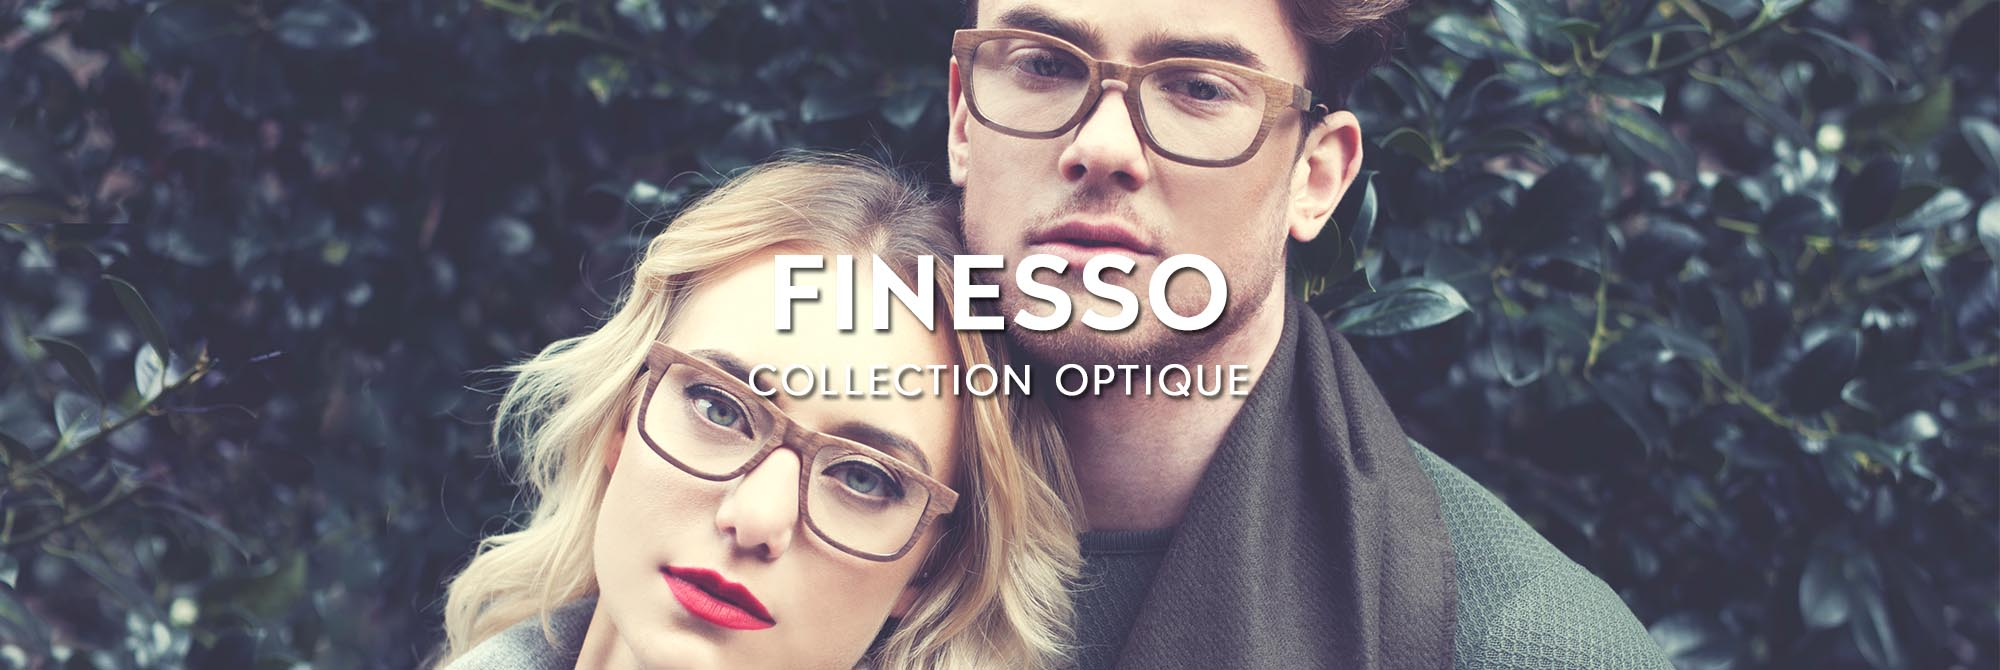 Collection optique en bois